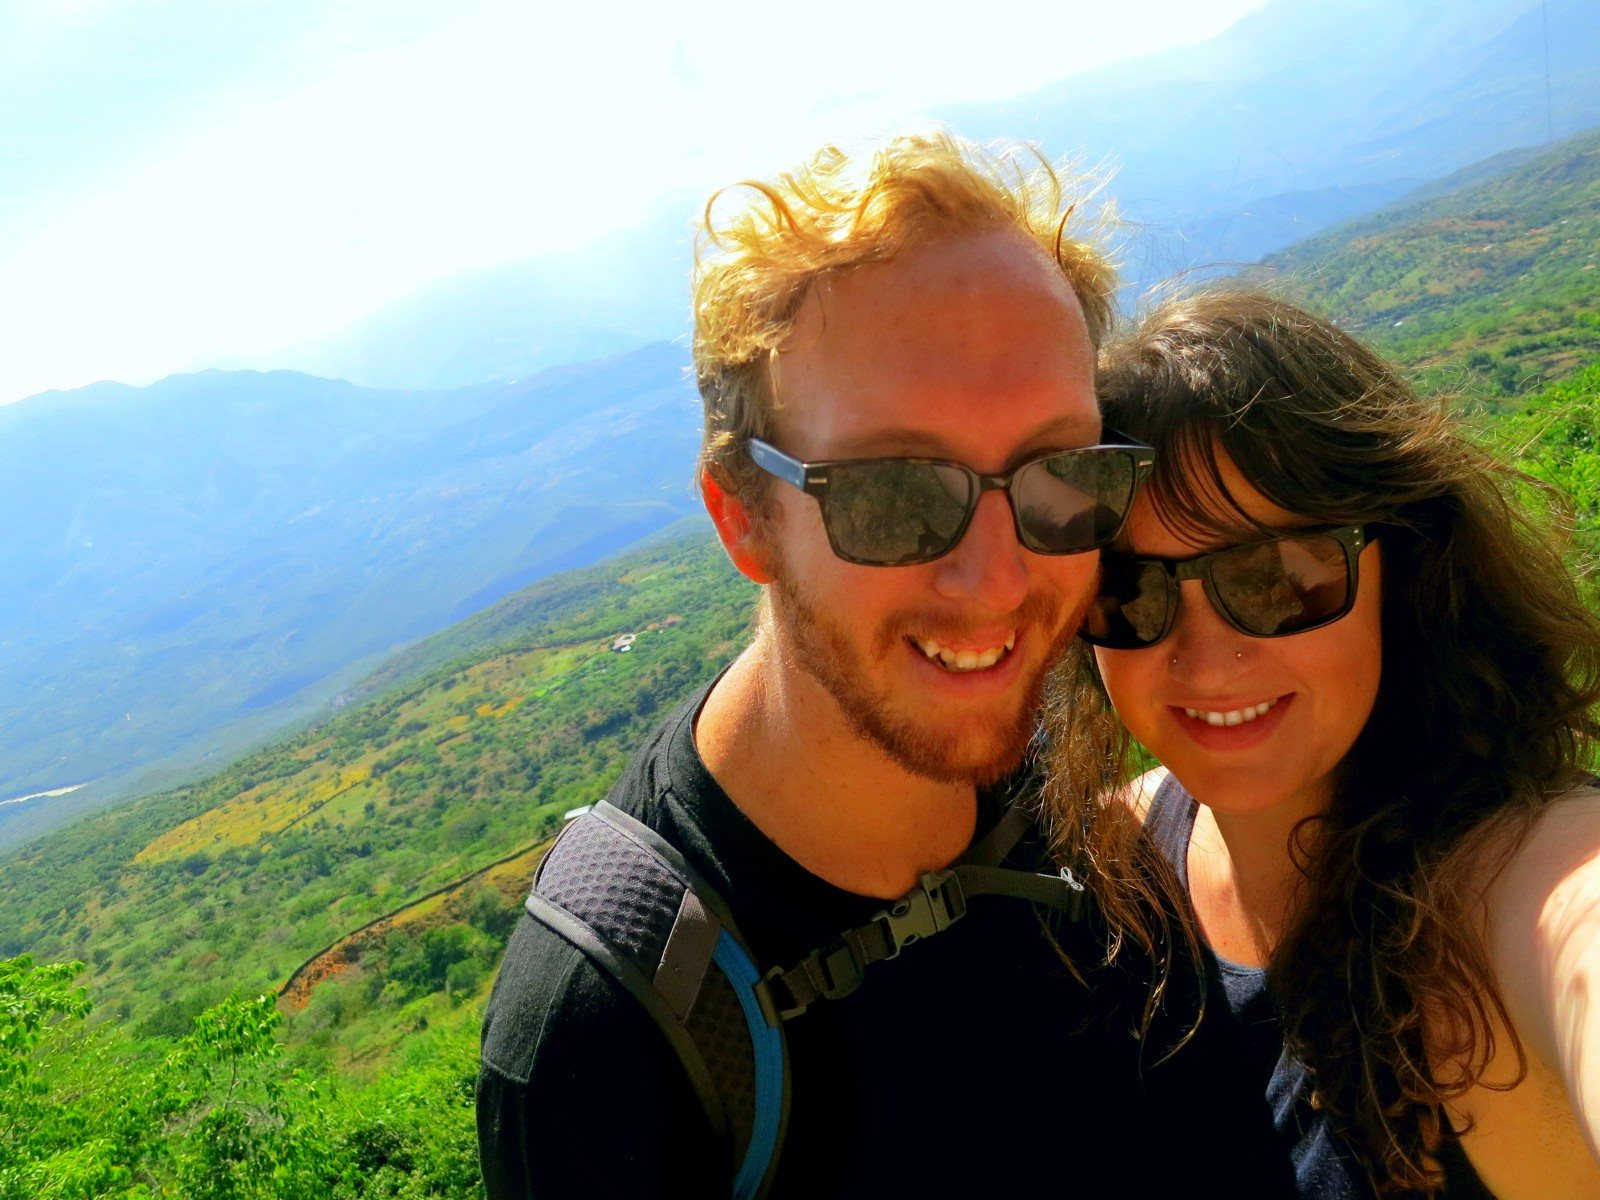 Selfie while hiking from Barichara to Guane near San Gil, Colombia!